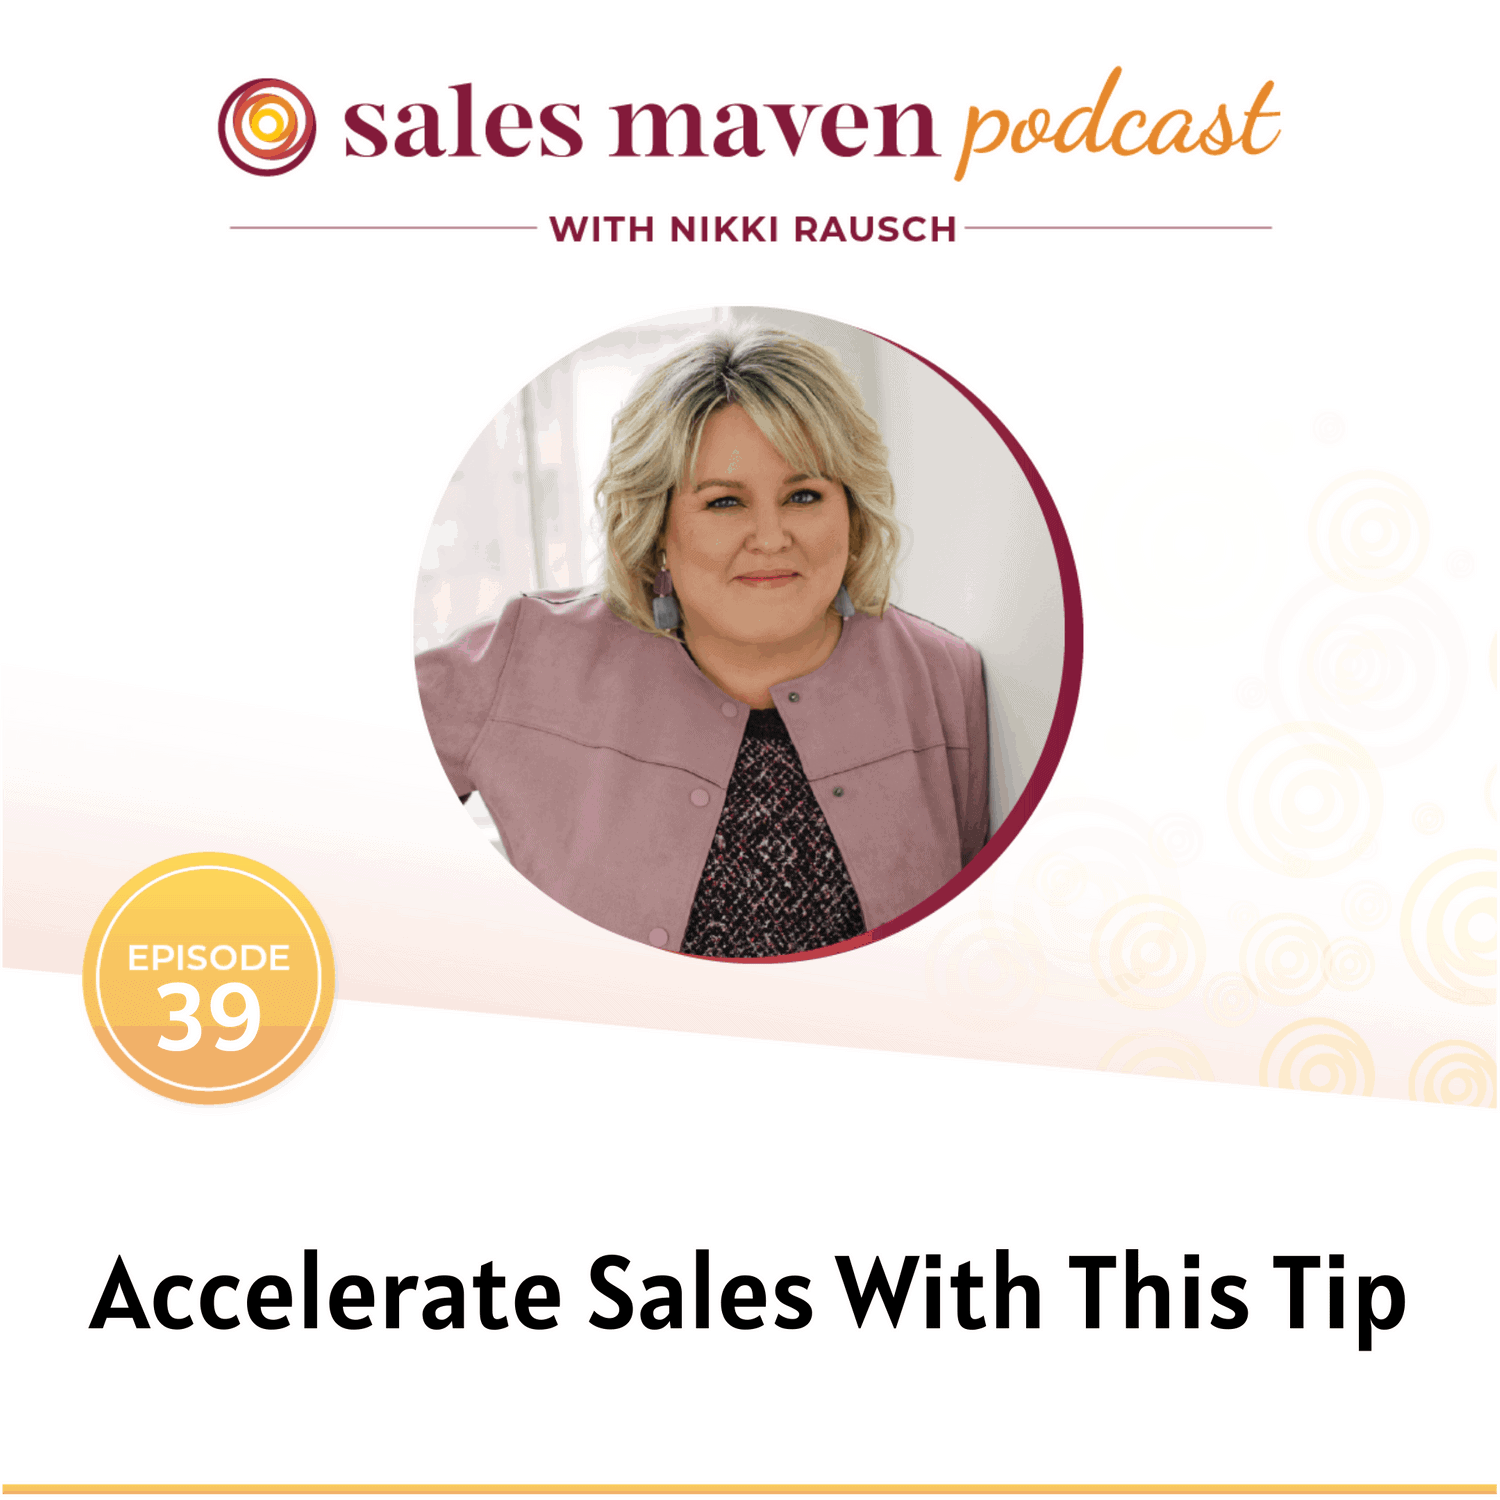 Accelerate Sales with This Tip